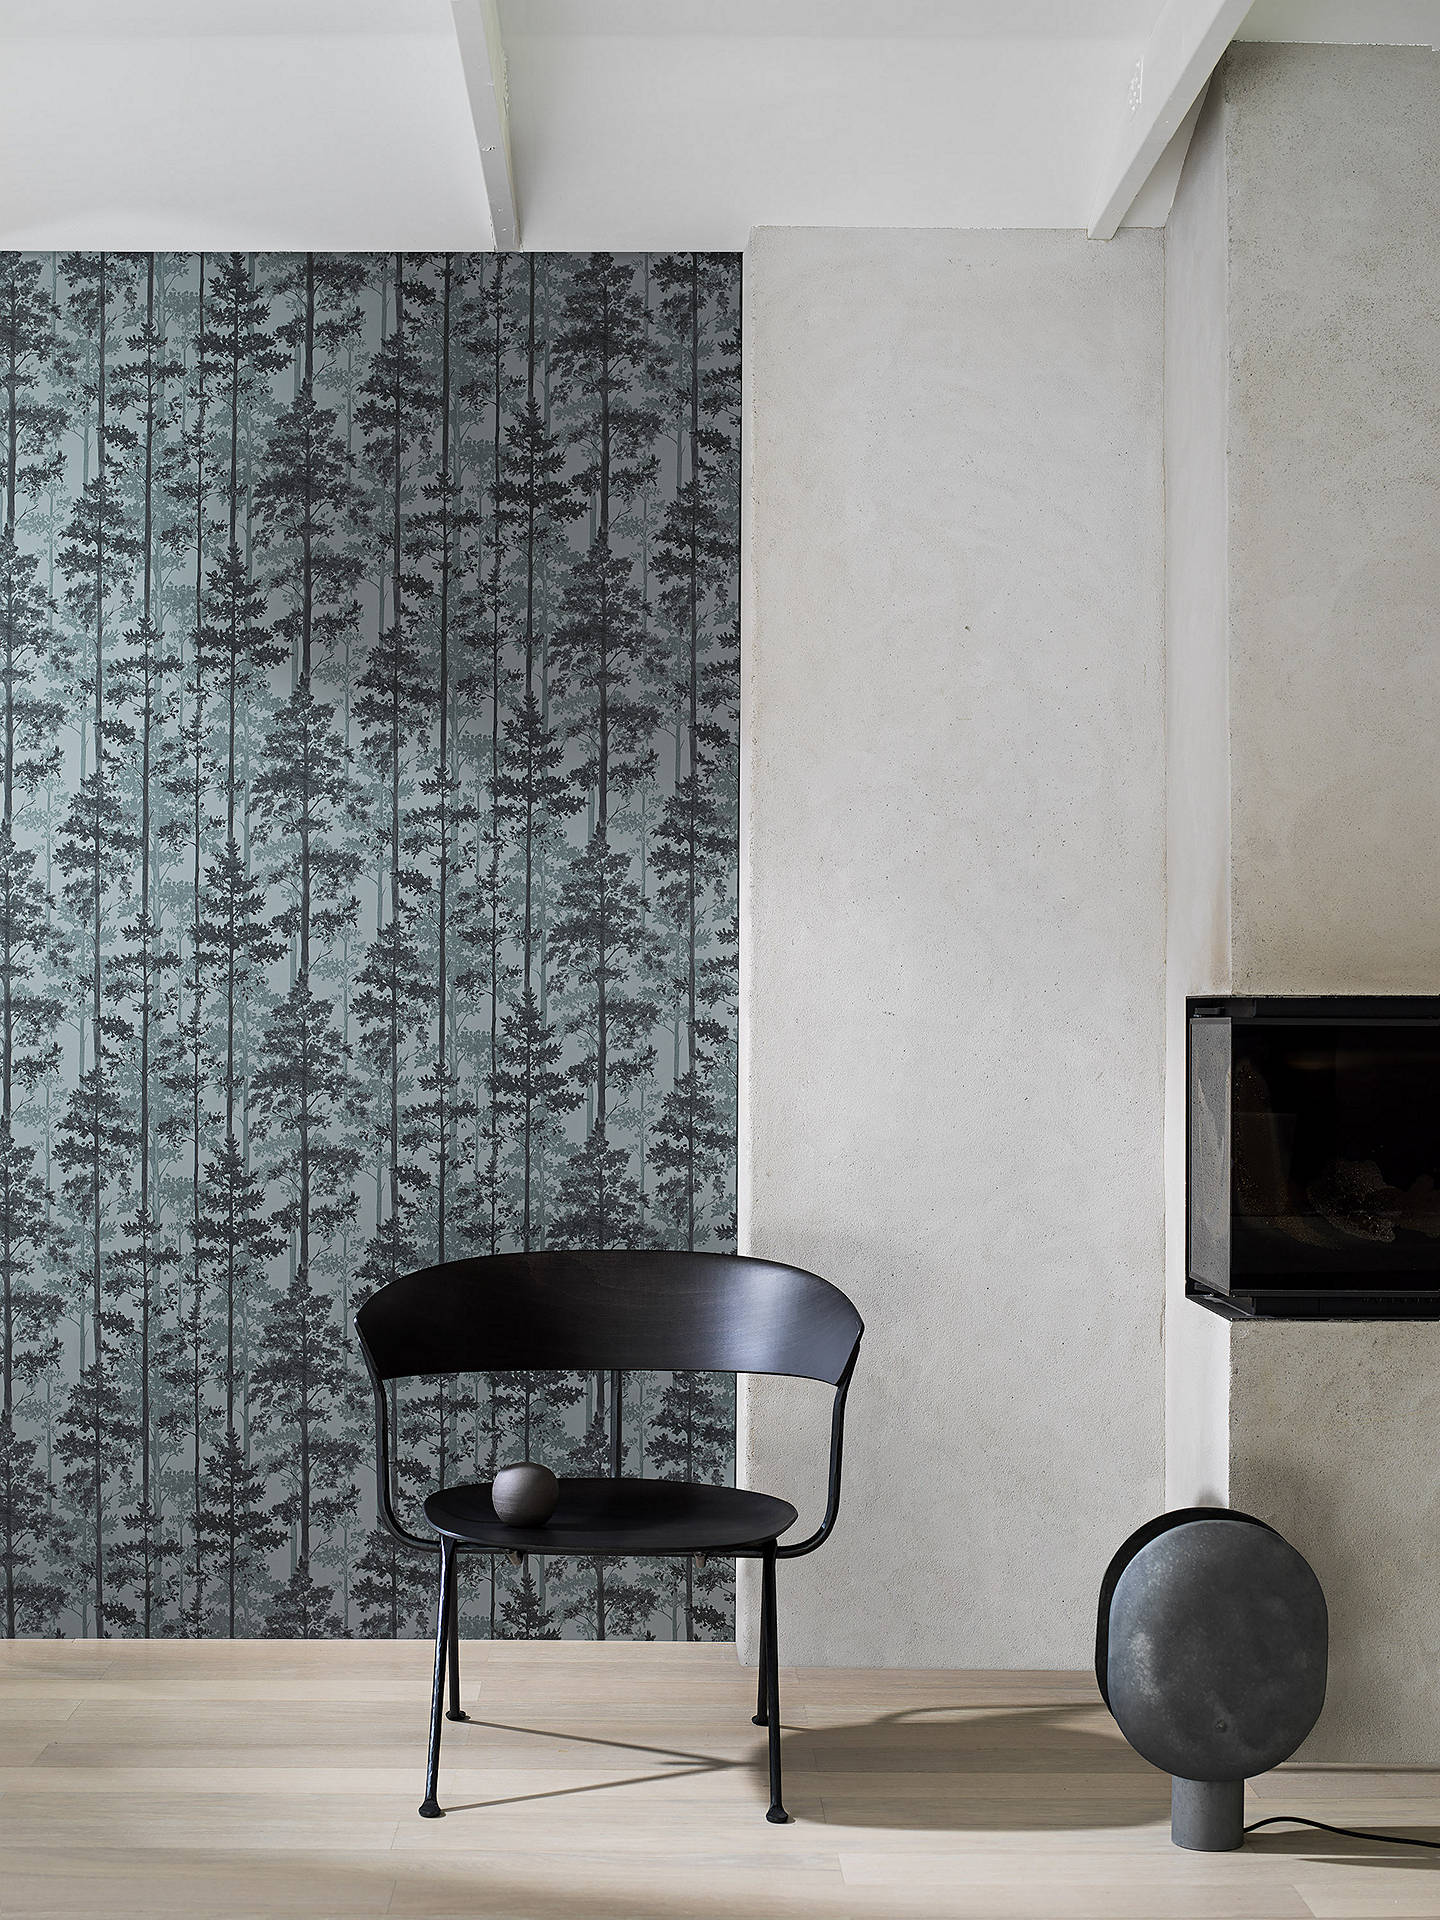 Buy Engblad & Co Pine Wallpaper, 8826 Online at johnlewis.com